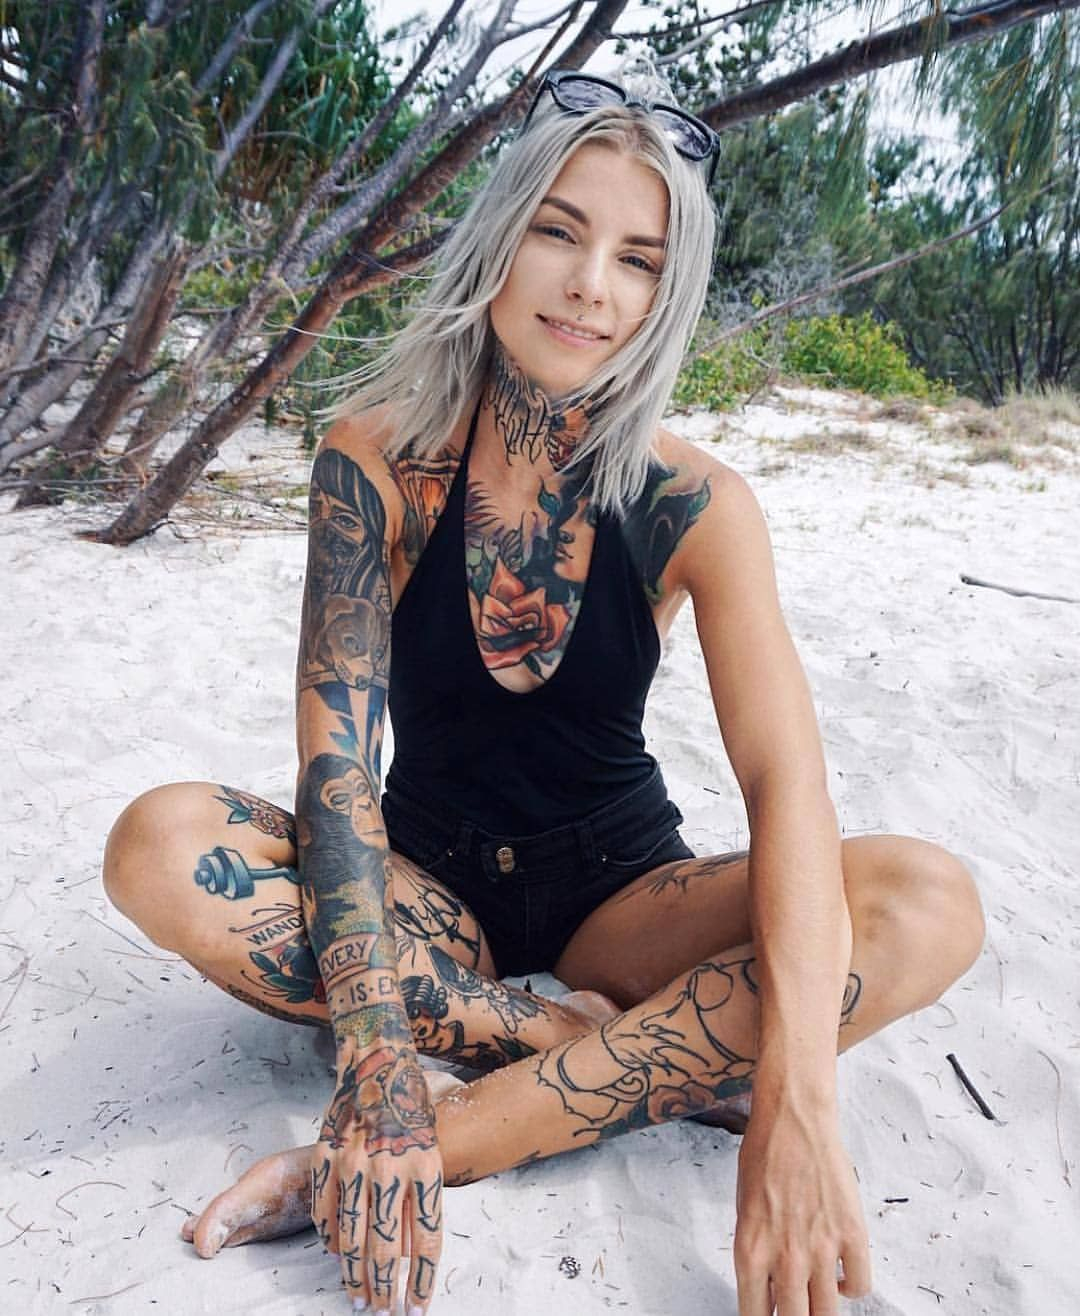 Sleeve Chest Beach Tattoos More Hot Tattoo Girls Girl with sizing 1080 X 1316